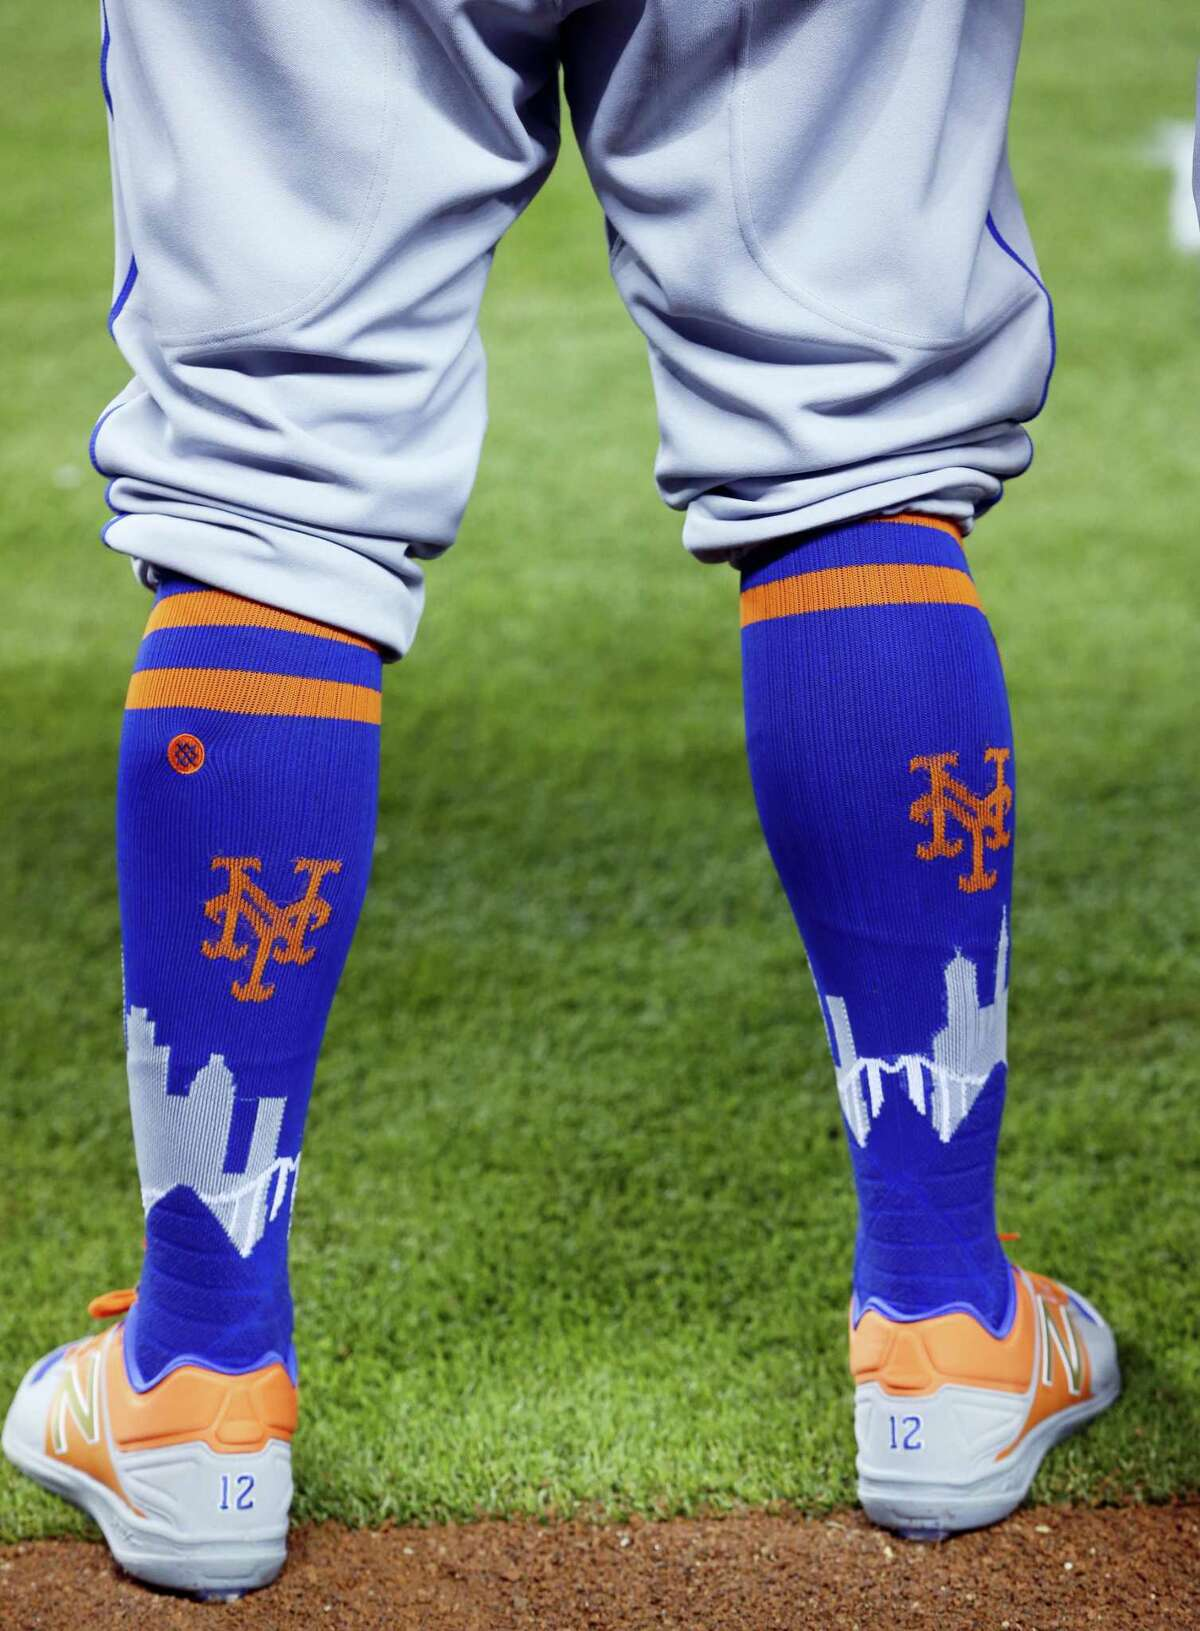 In this April 15, 2017 photo, New York Mets center fielder Juan Lagares' socks are shown before the start of a baseball game against the Miami Marlins in Miami. This season, baseball has put footwear at the forefront, working with a new provider to create custom sock looks for almost all its teams, as well as special occasion designs for events like Mother's Day and the upcoming All-Star Game.